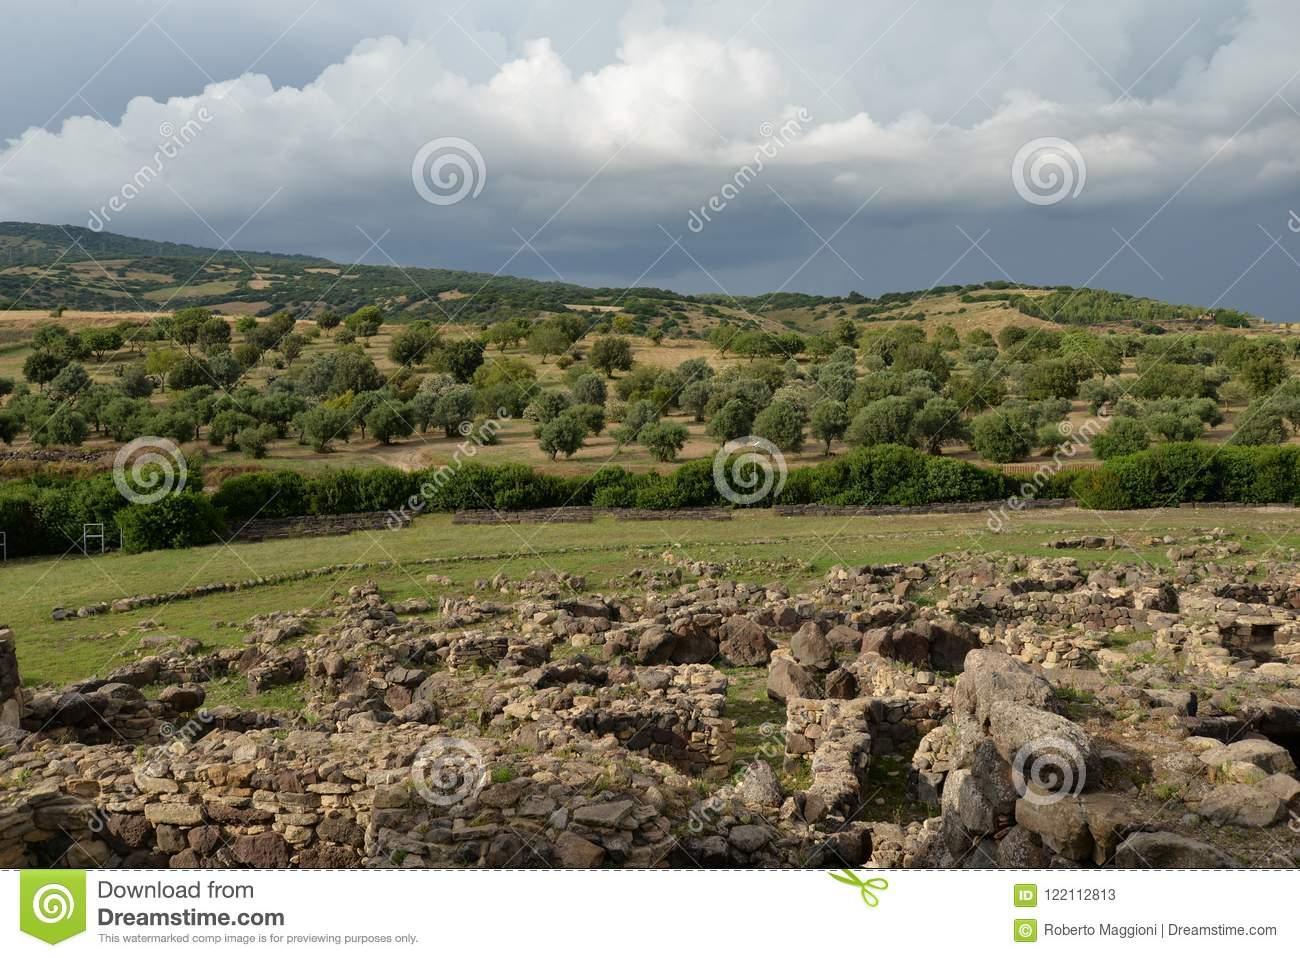 Sardinia, Italy. Rural landscape by dramatic weather